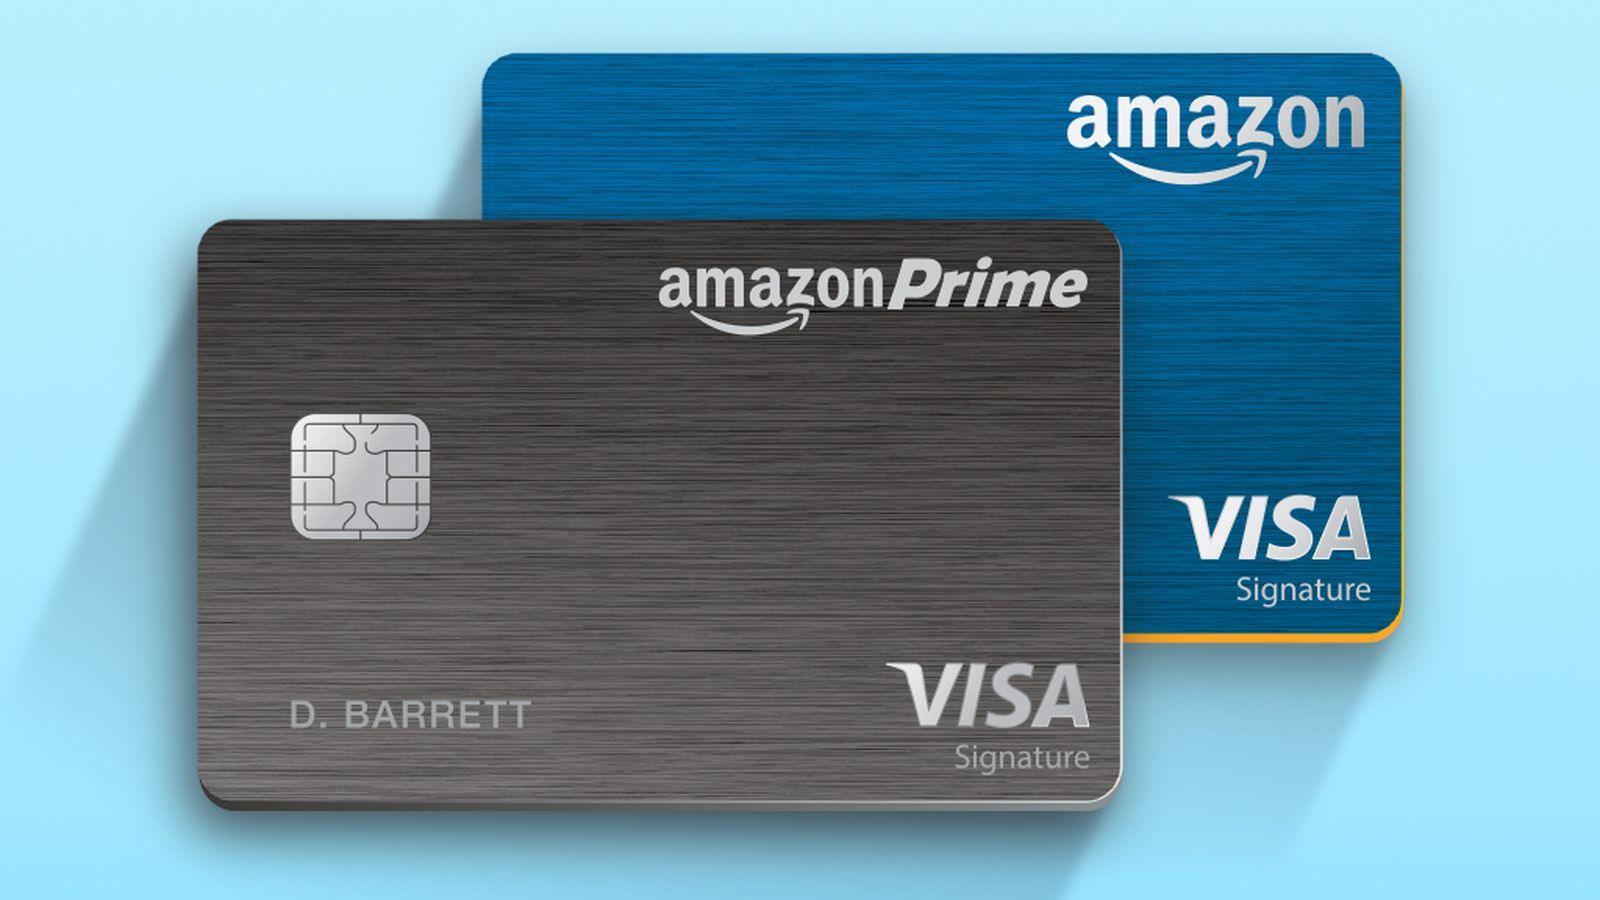 Amazon upgrades its Prime credit card with 13 percent cashback